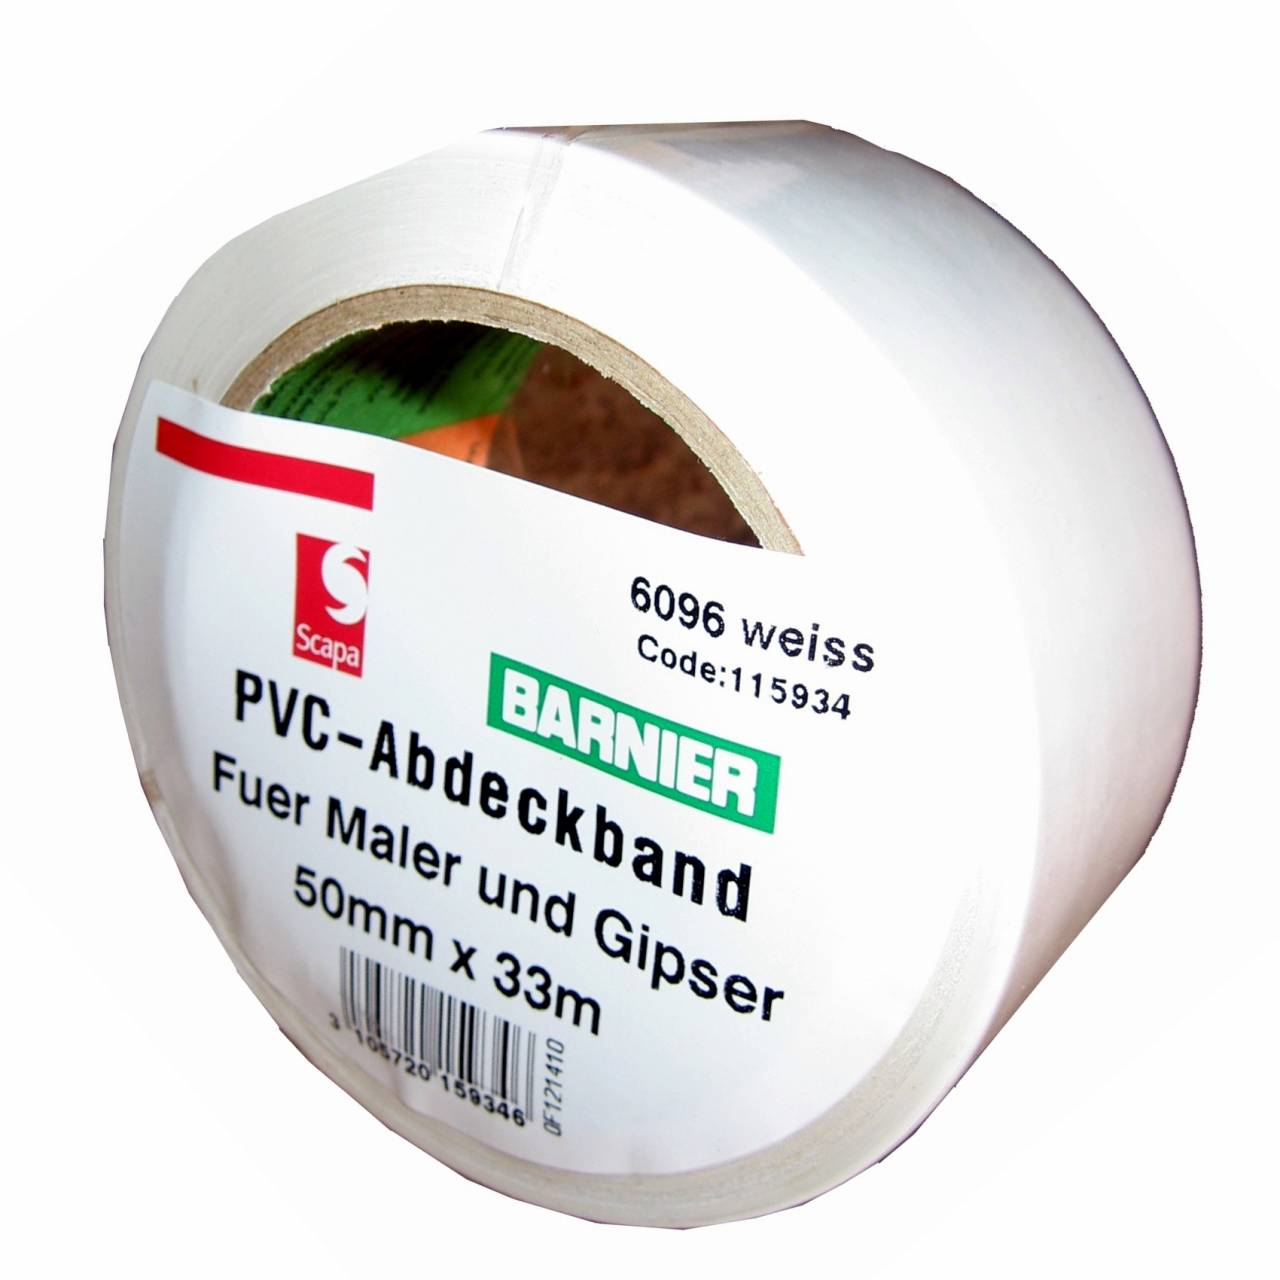 Barnier® 6096 PVC-Band 50 mm x 33 m weiss / Rolle